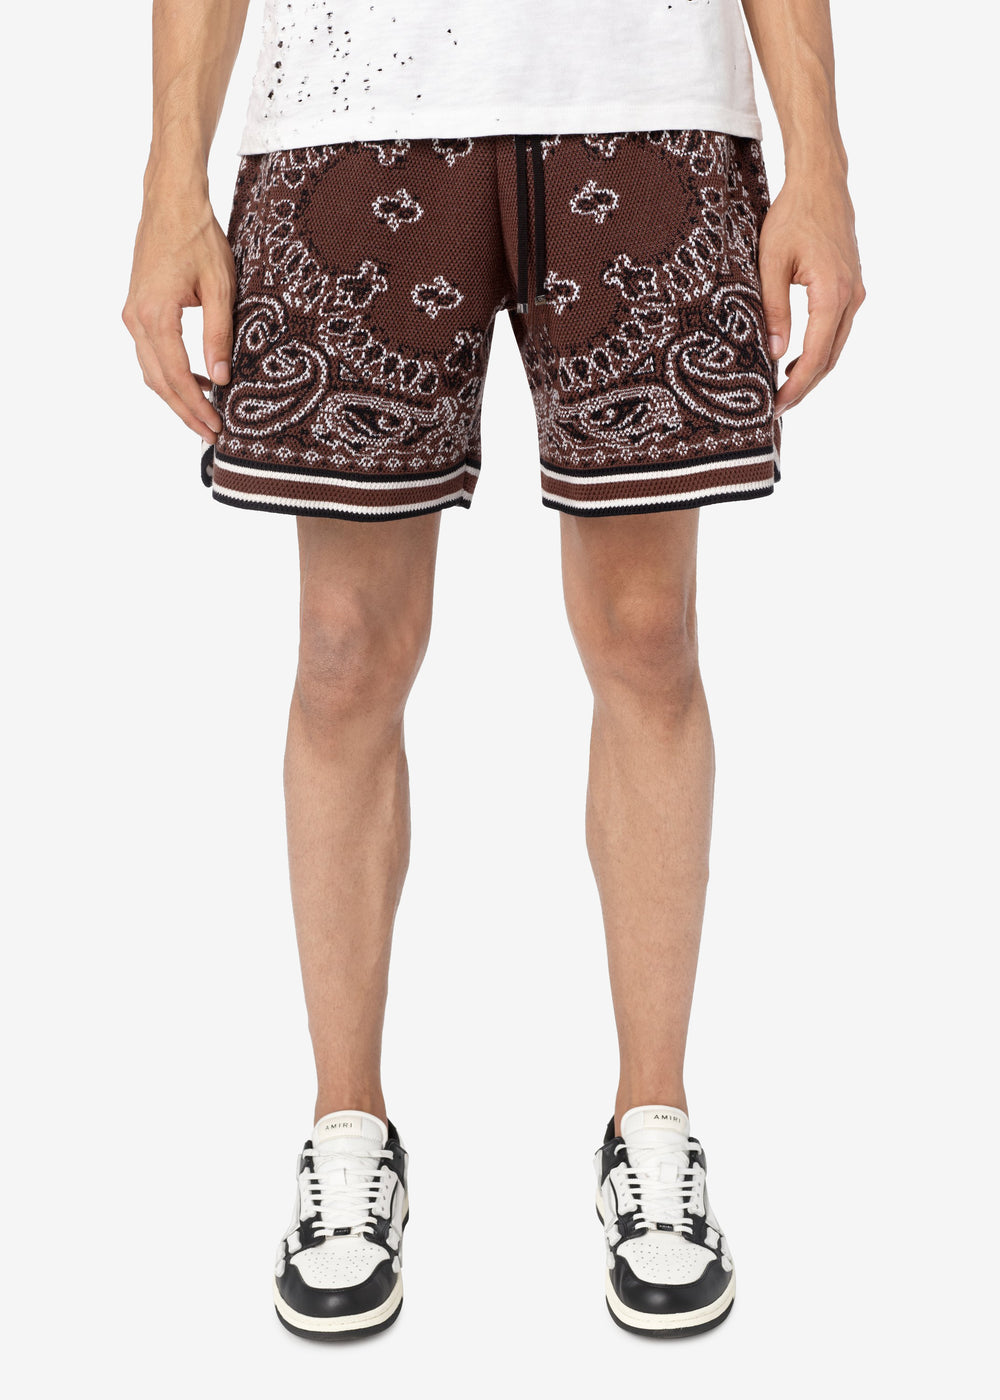 BANDANA B-BALL SHORTS - DARK BROWN